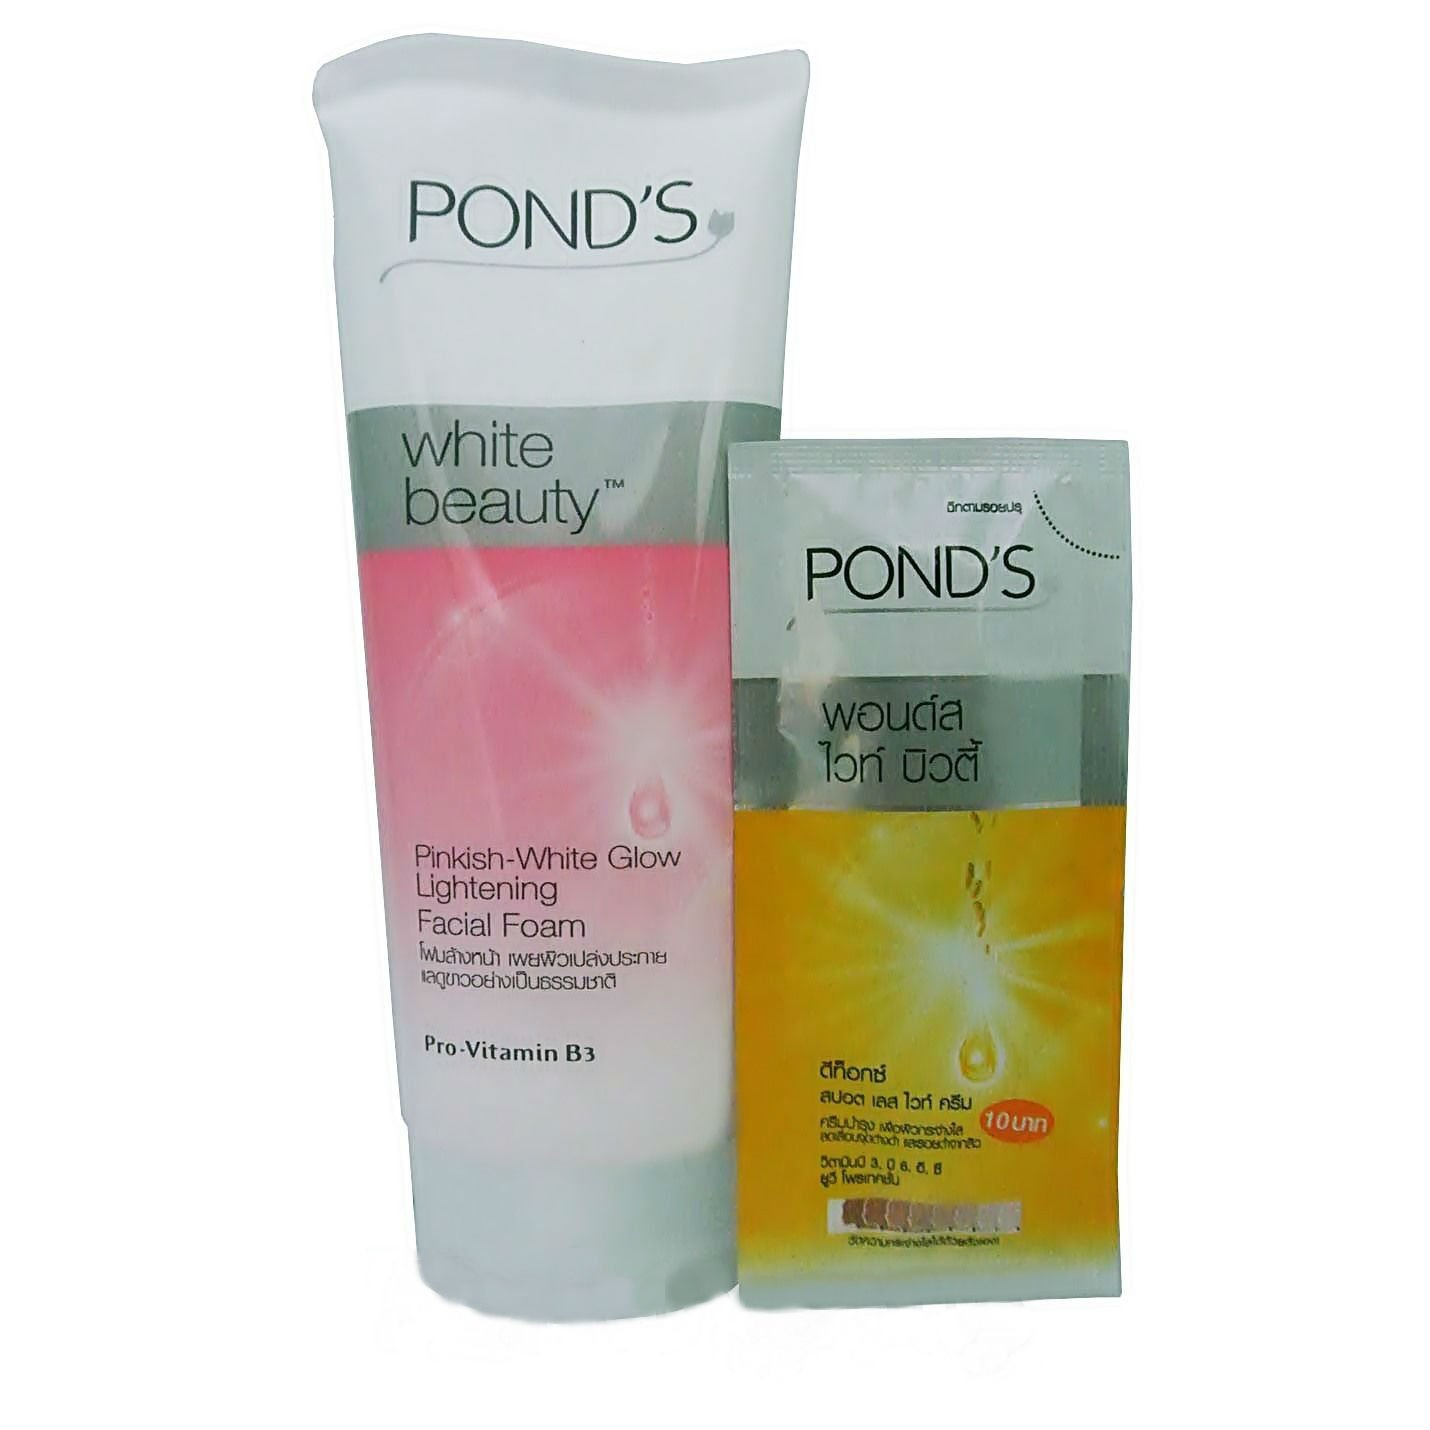 POND'S WHITE BEAUTY PINKISH GLOW LIGHTENING LIGHT FACIAL FOAM and DETOX CREAM